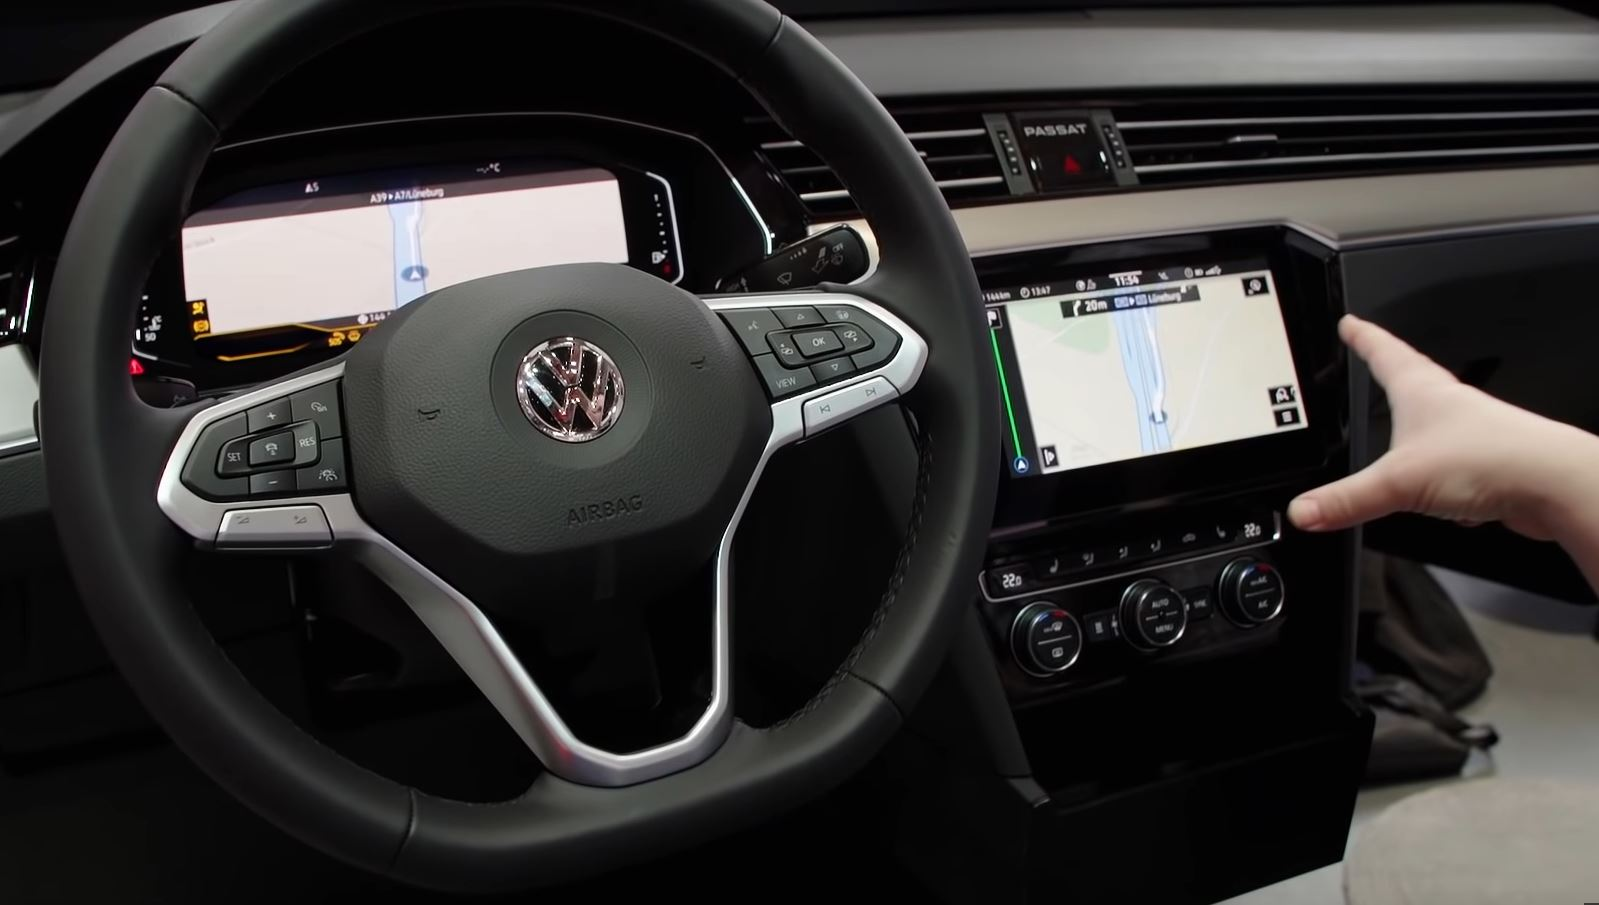 2019 Vw Passat B8 Facelift Gets Detailed Walkaround Video Inside And Out Autoevolution